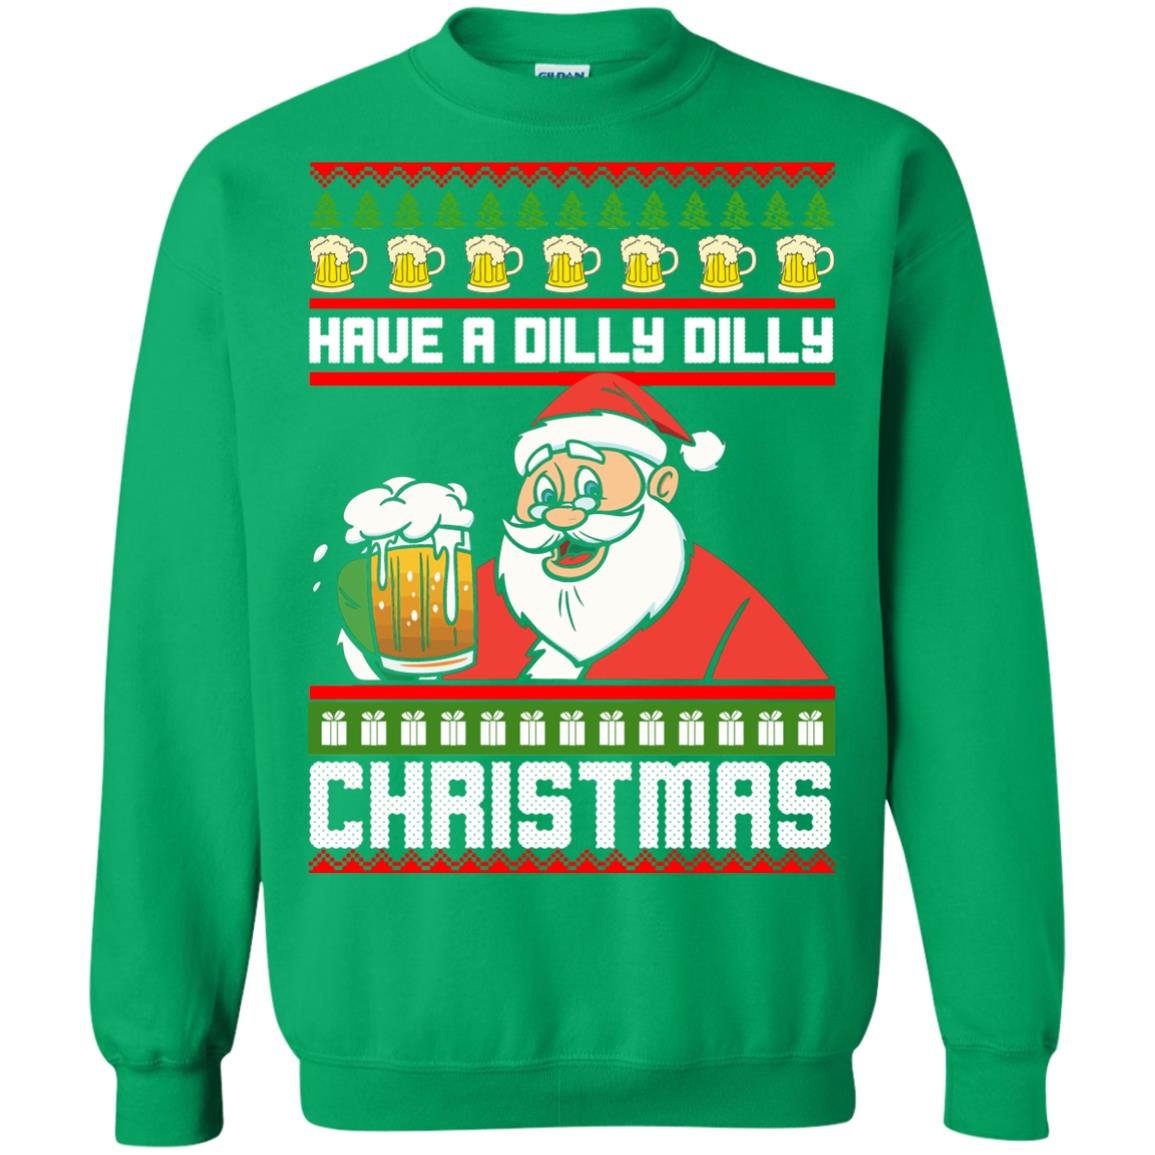 image 6137 - Have a Dilly Dilly Christmas Ugly Sweatshirt, Long Sleeve